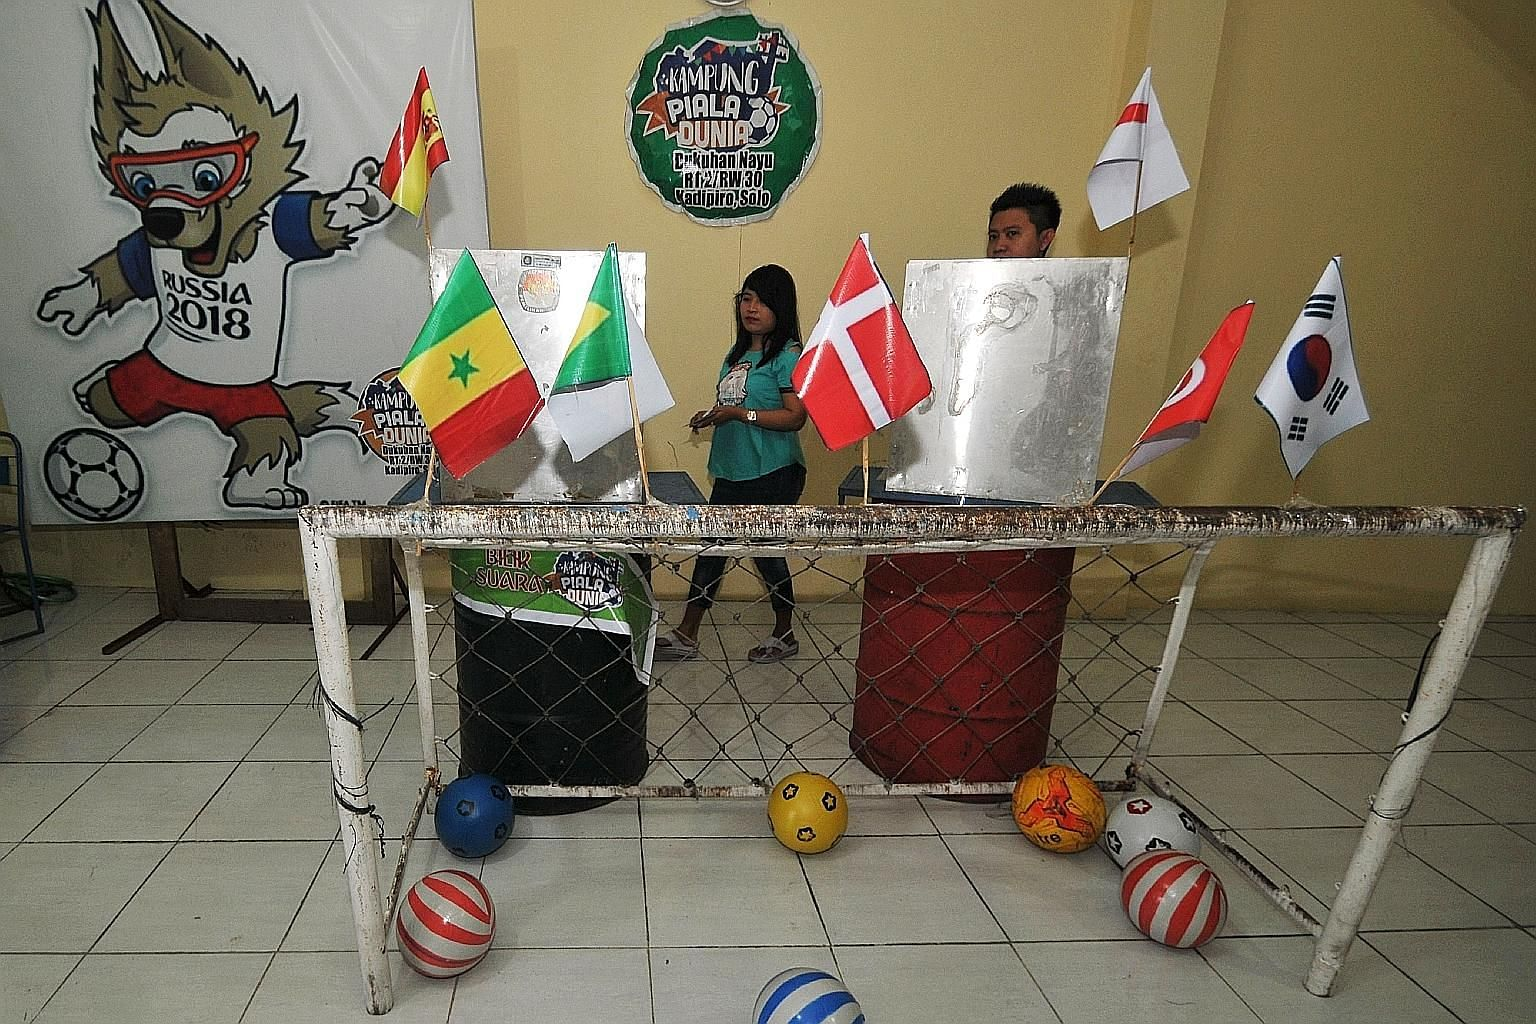 A polling station in Solo, Central Java, decorated with a football theme amid the ongoing World Cup in Russia. Over 150 million registered voters were set to elect their governors, mayors and regents in yesterday's polls.